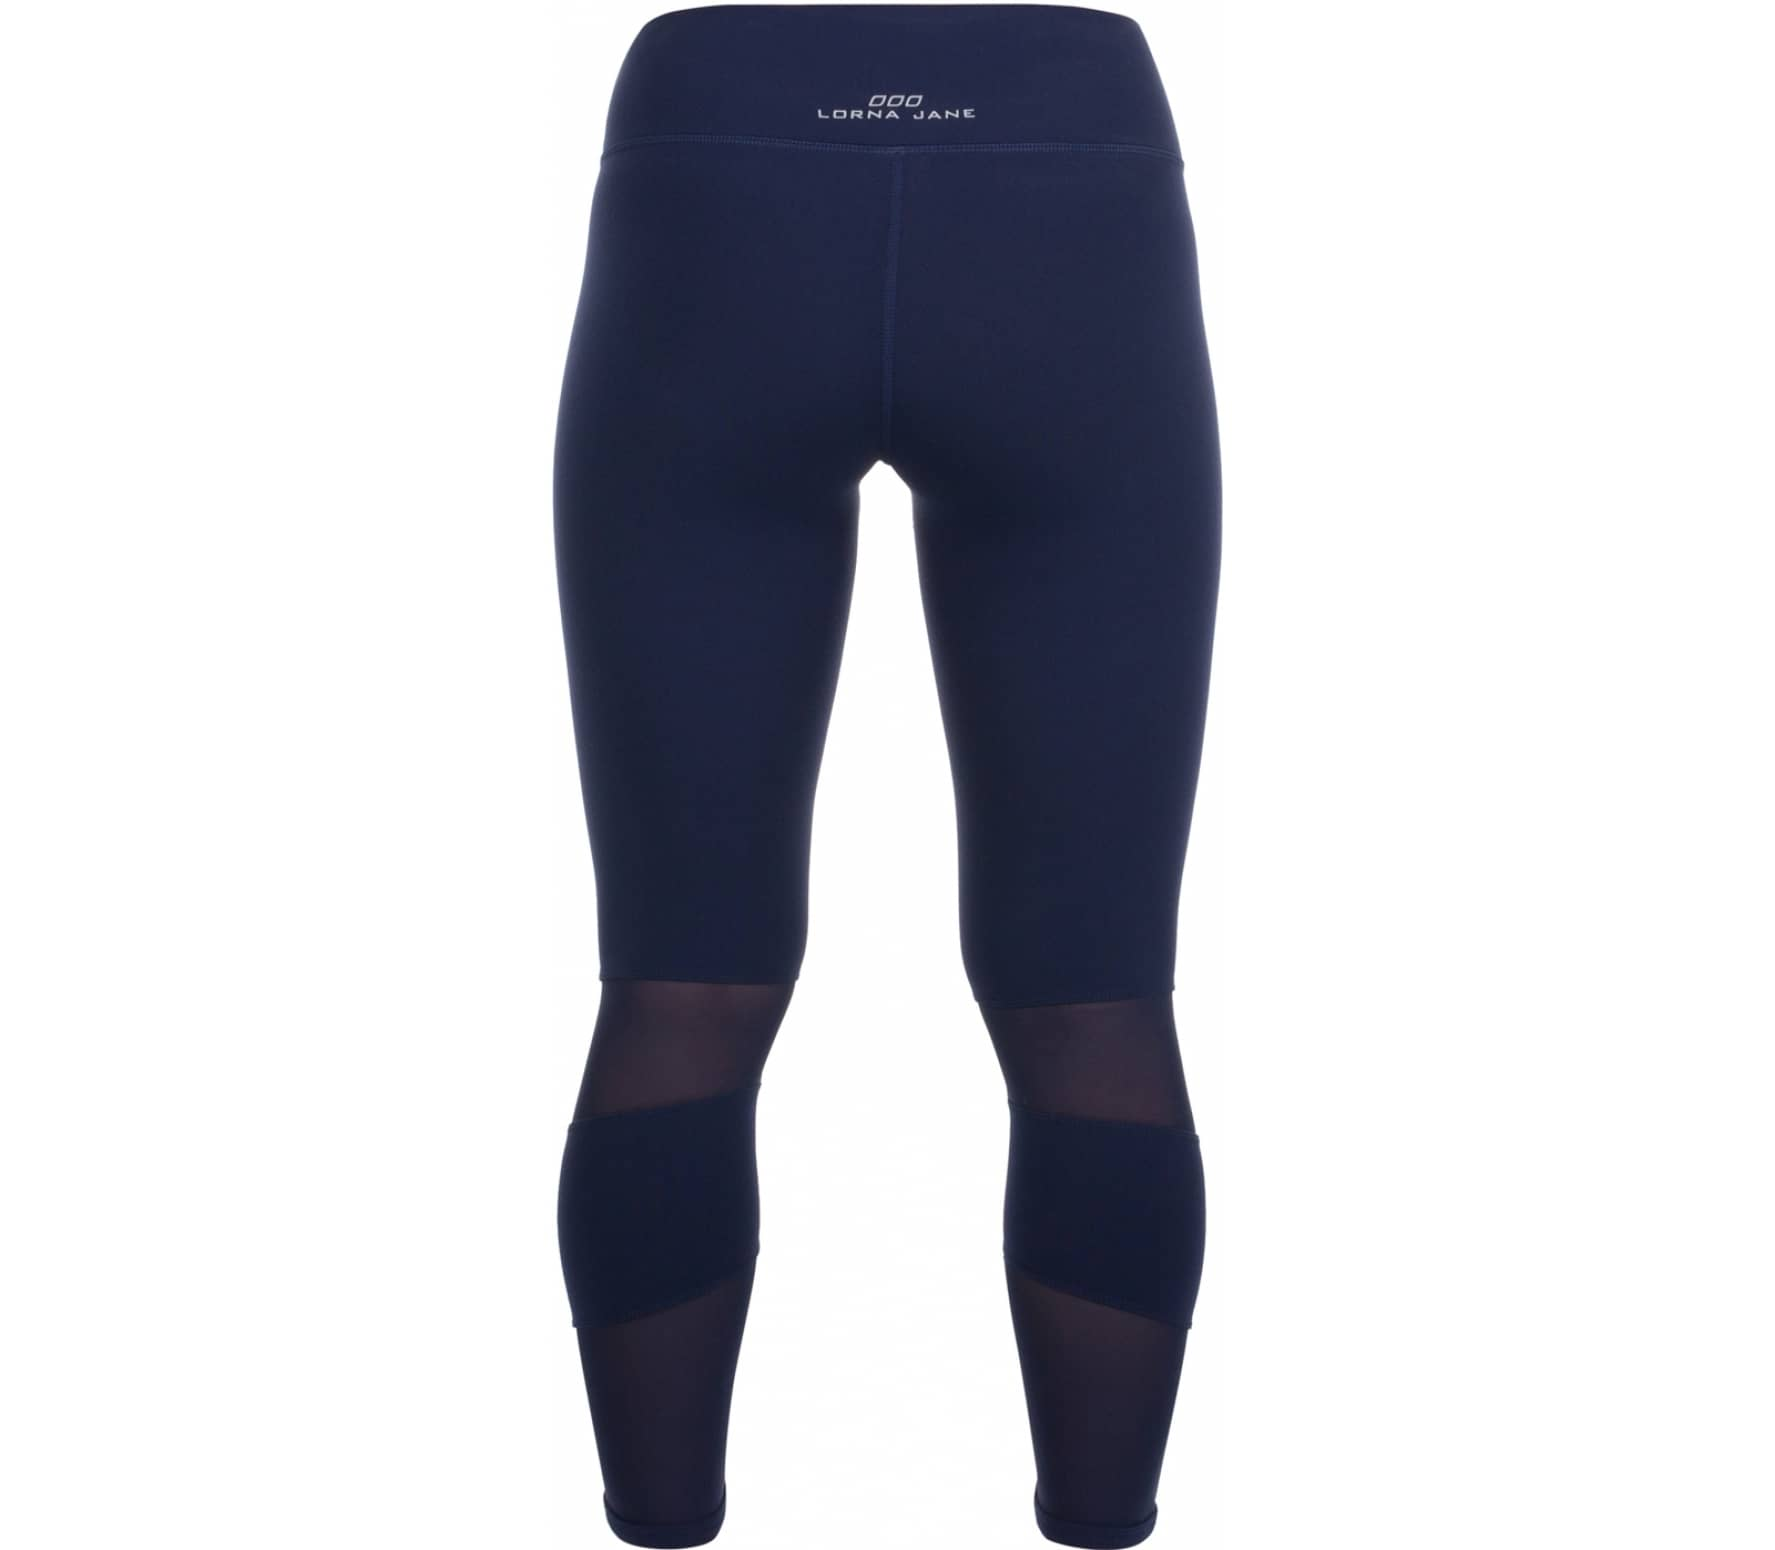 Lorna Jane - Cecile Core A/B women's training pants (dark blue)